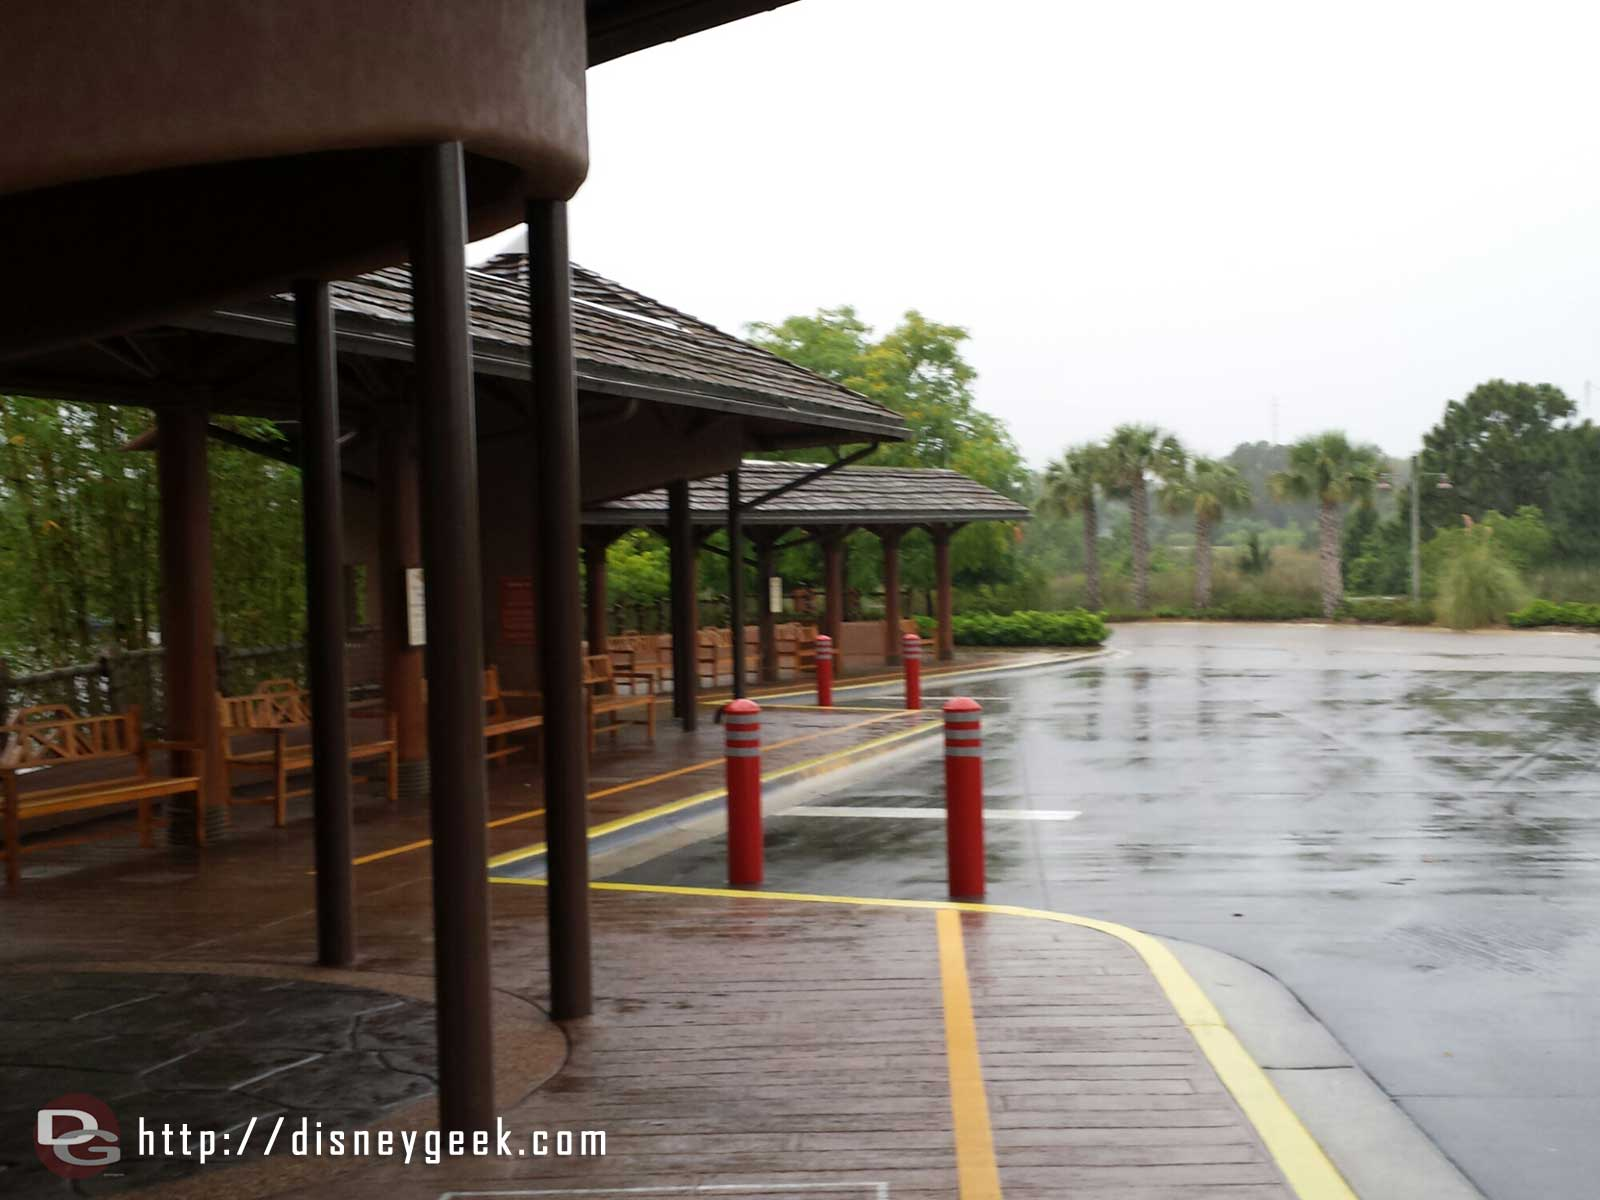 Walt Disney World Day 5 (5/03/14) – summary & trip log